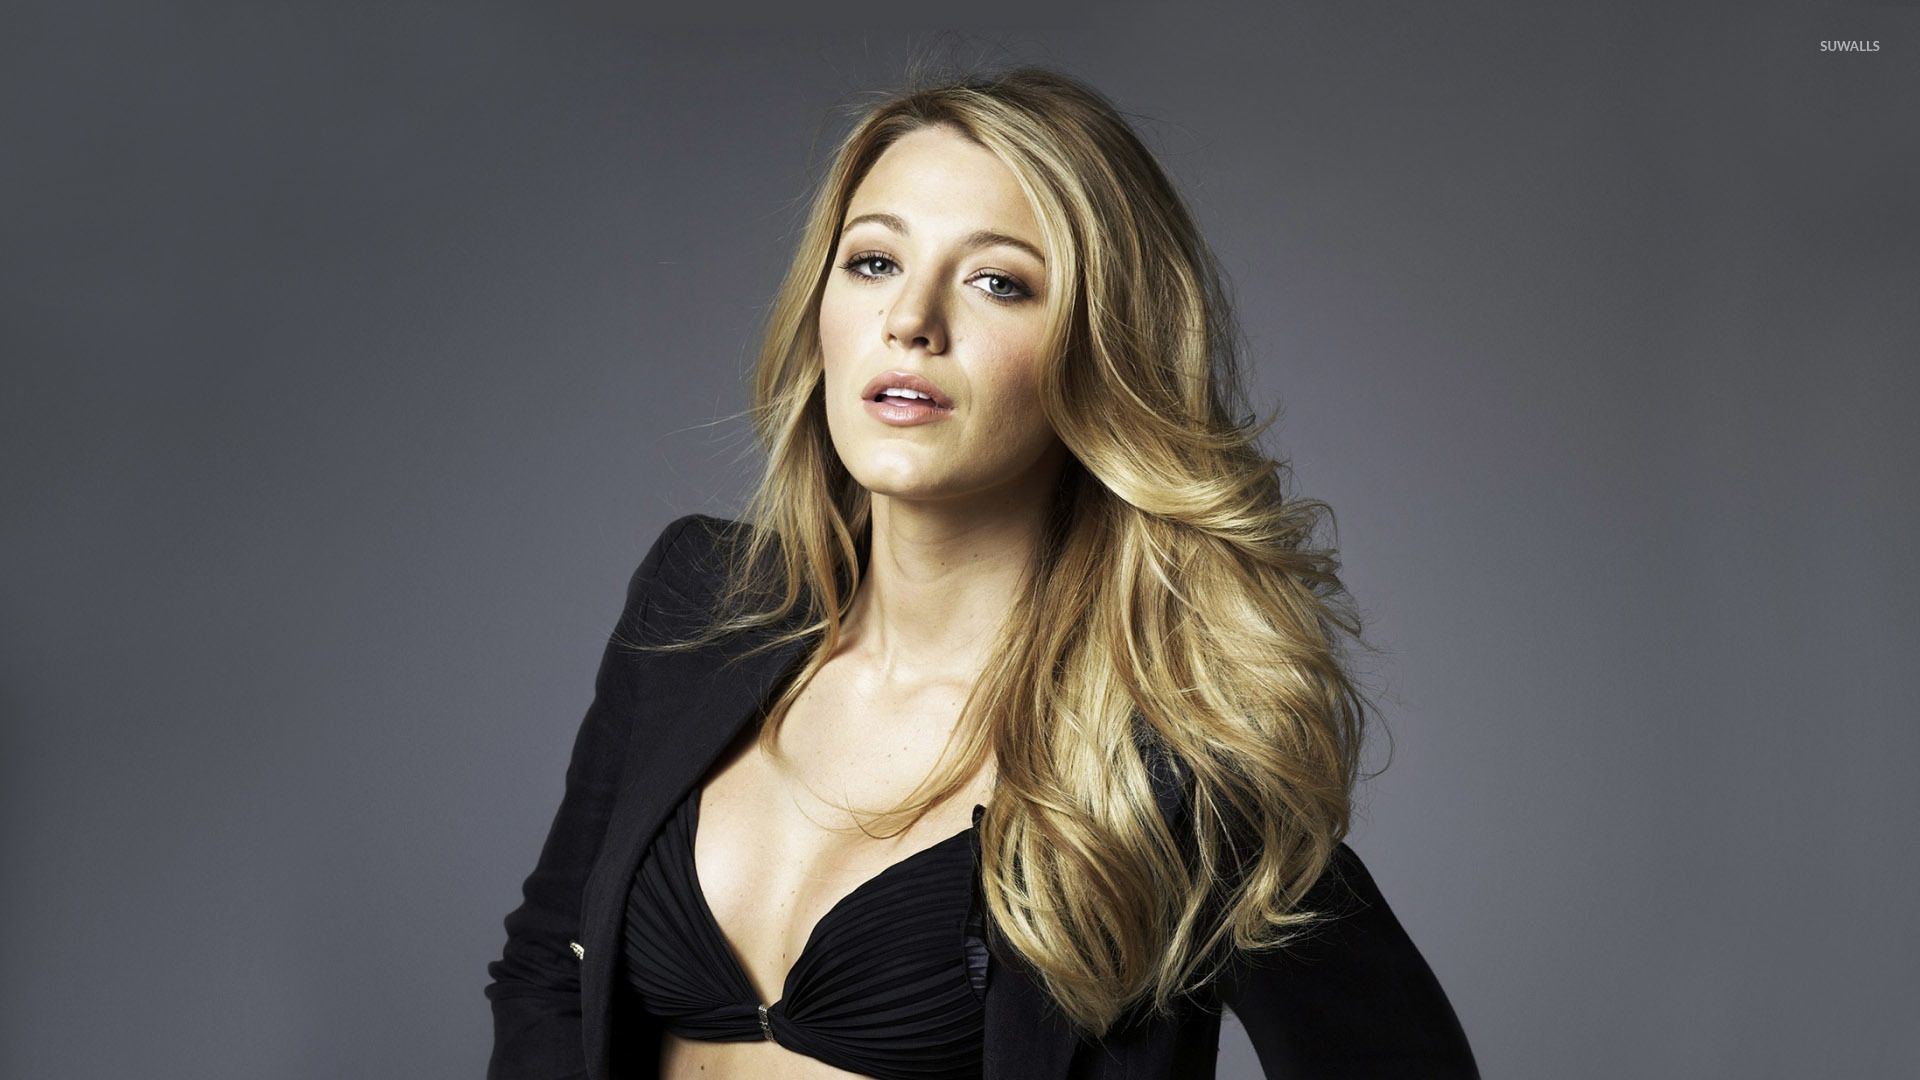 Blake Lively Wallpapers Top Free Blake Lively Backgrounds Wallpaperaccess